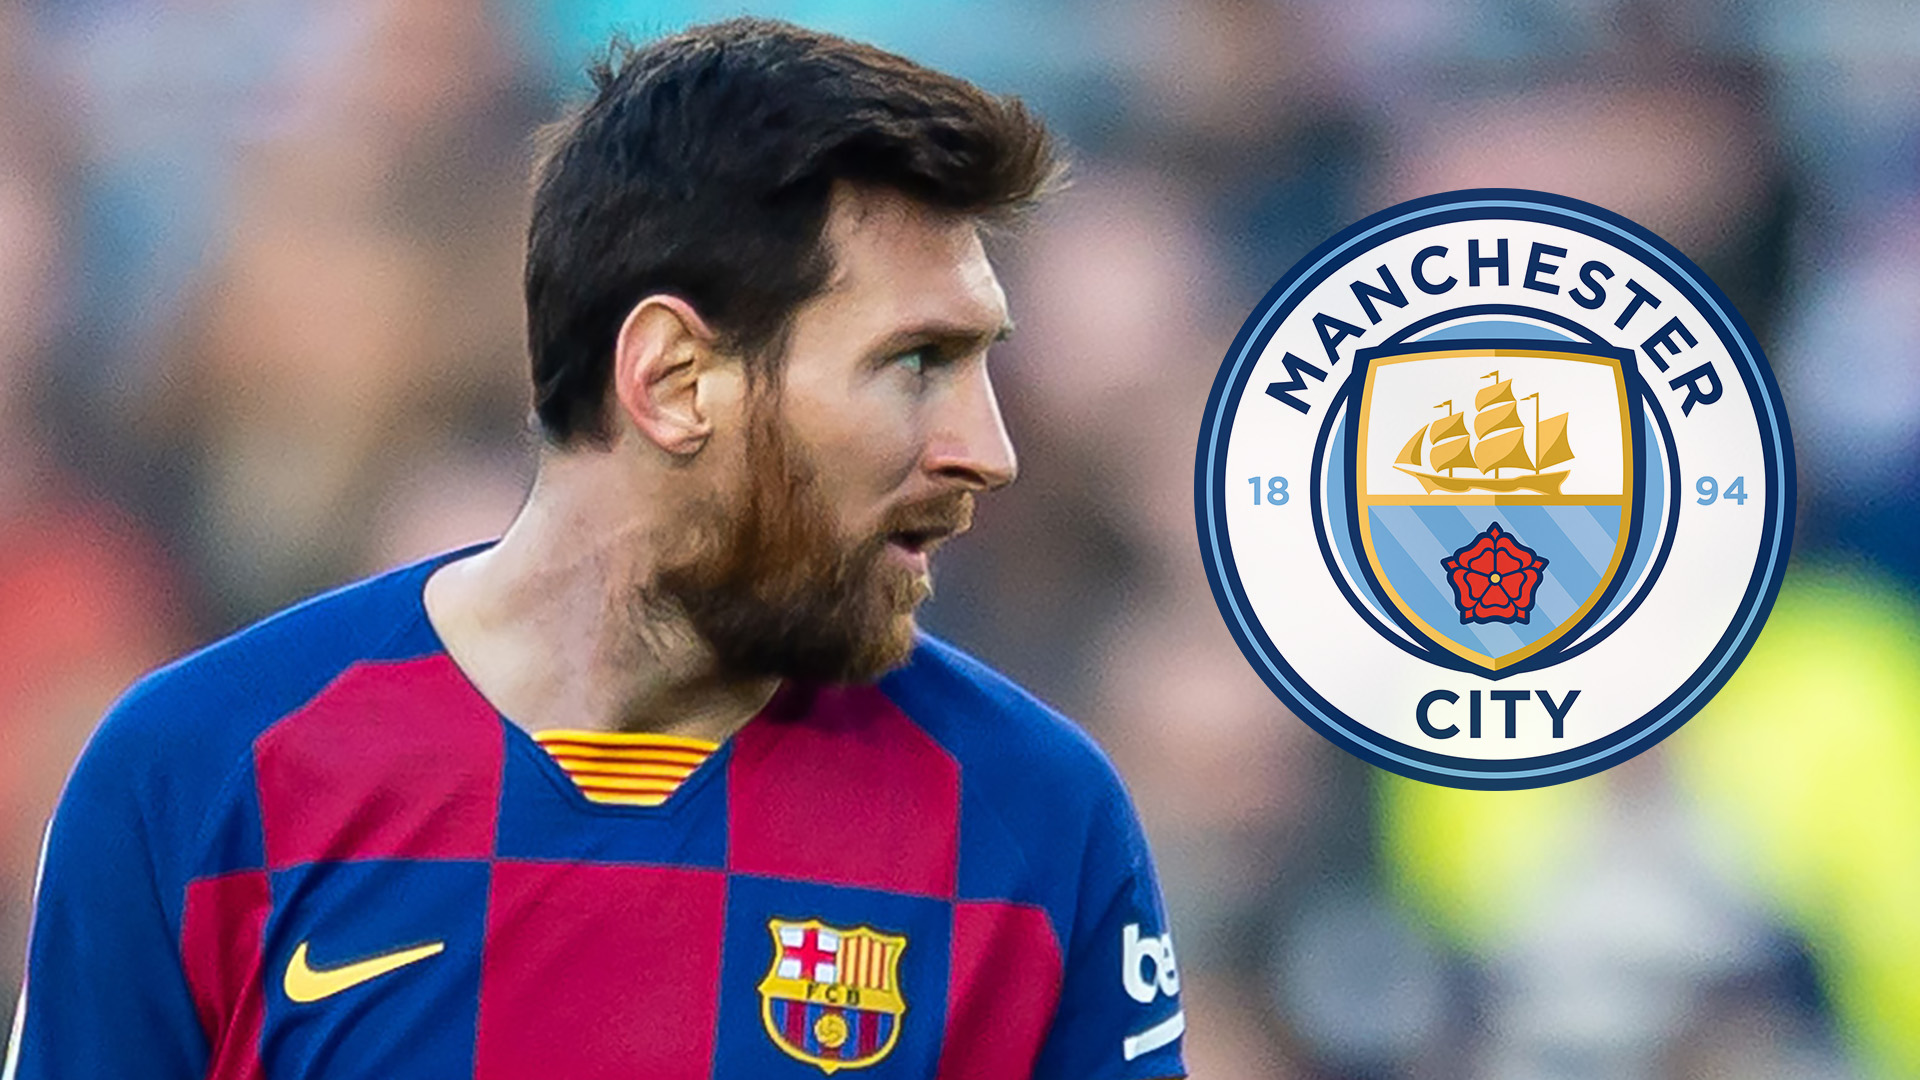 'I'd be delighted if Man City get Messi' - Liverpool legend Carragher disappointed Barcelona star isn't coming to the Premier League yet